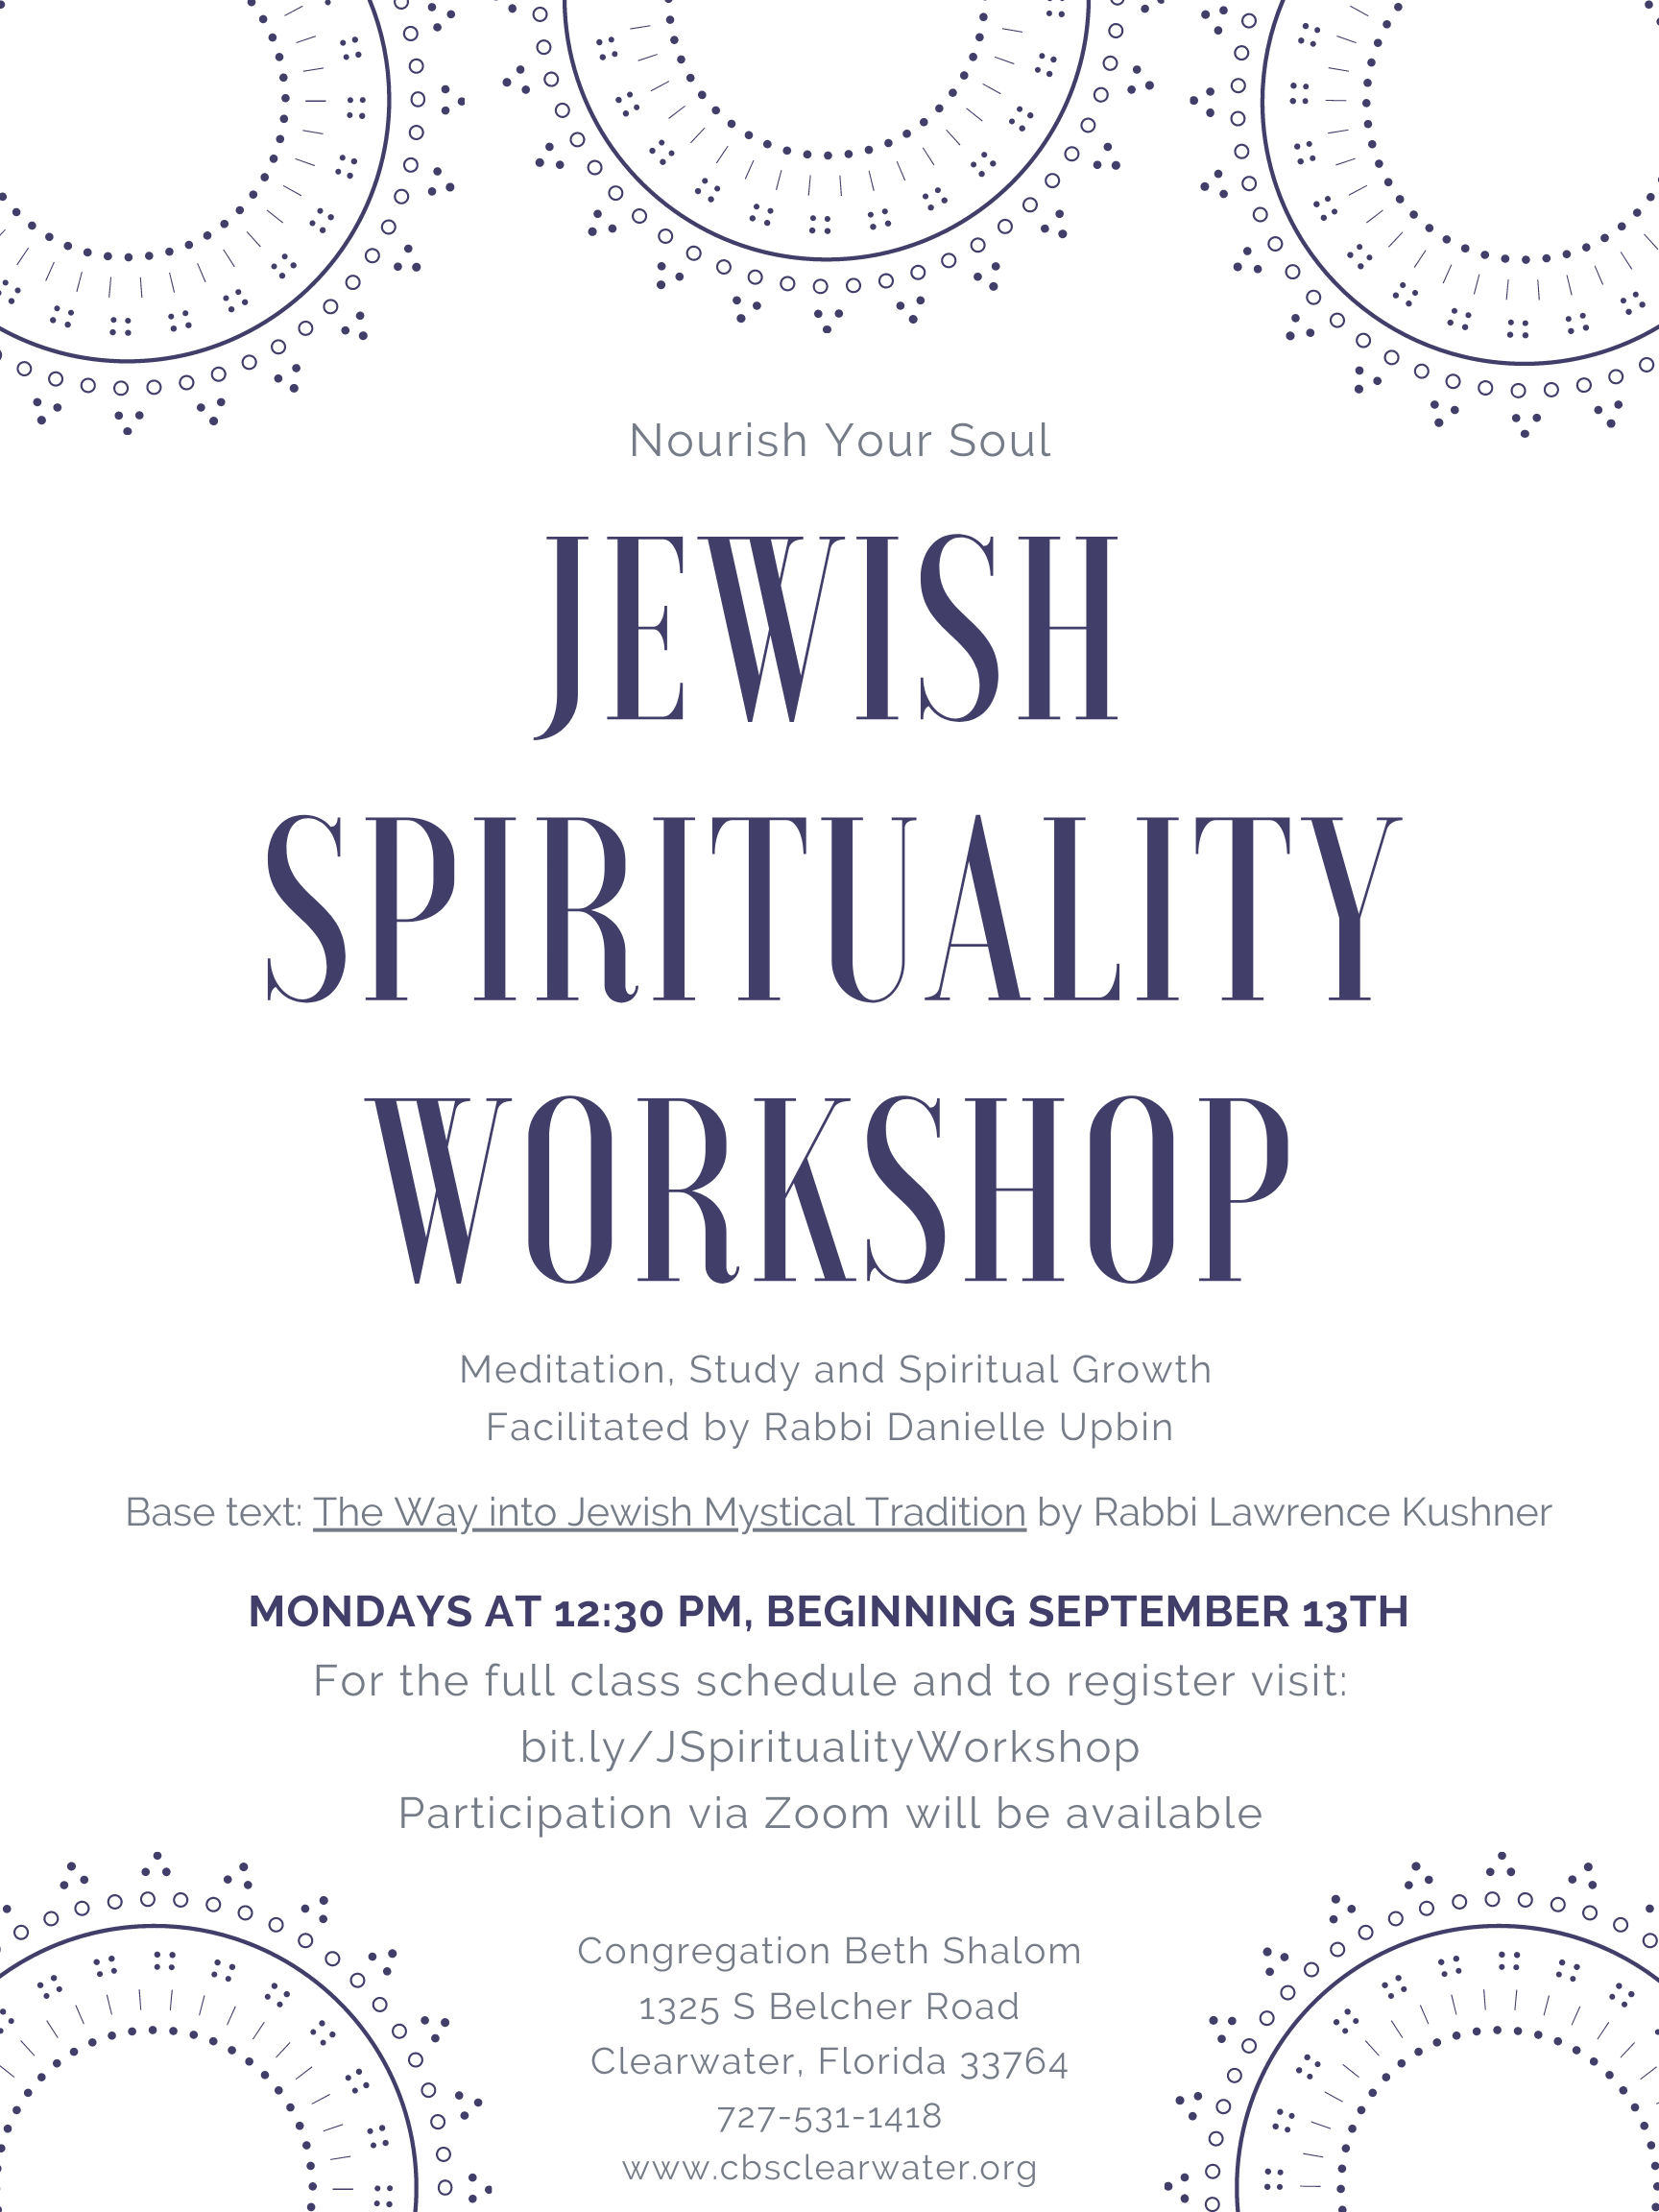 """</a>                                                                                                                                                                                       <span class=""""slider_description"""">Join Rabbi Danielle Upbin for this meaningful experience.</span>                                                                                     <a href=""""https://www.cbsclearwater.org/event/jewish-spirituality-workshop-new-class.-new-work.-new-year.html"""" class=""""slider_link""""                             target=""""_blank"""">                             Click here to sign-up!                            </a>"""